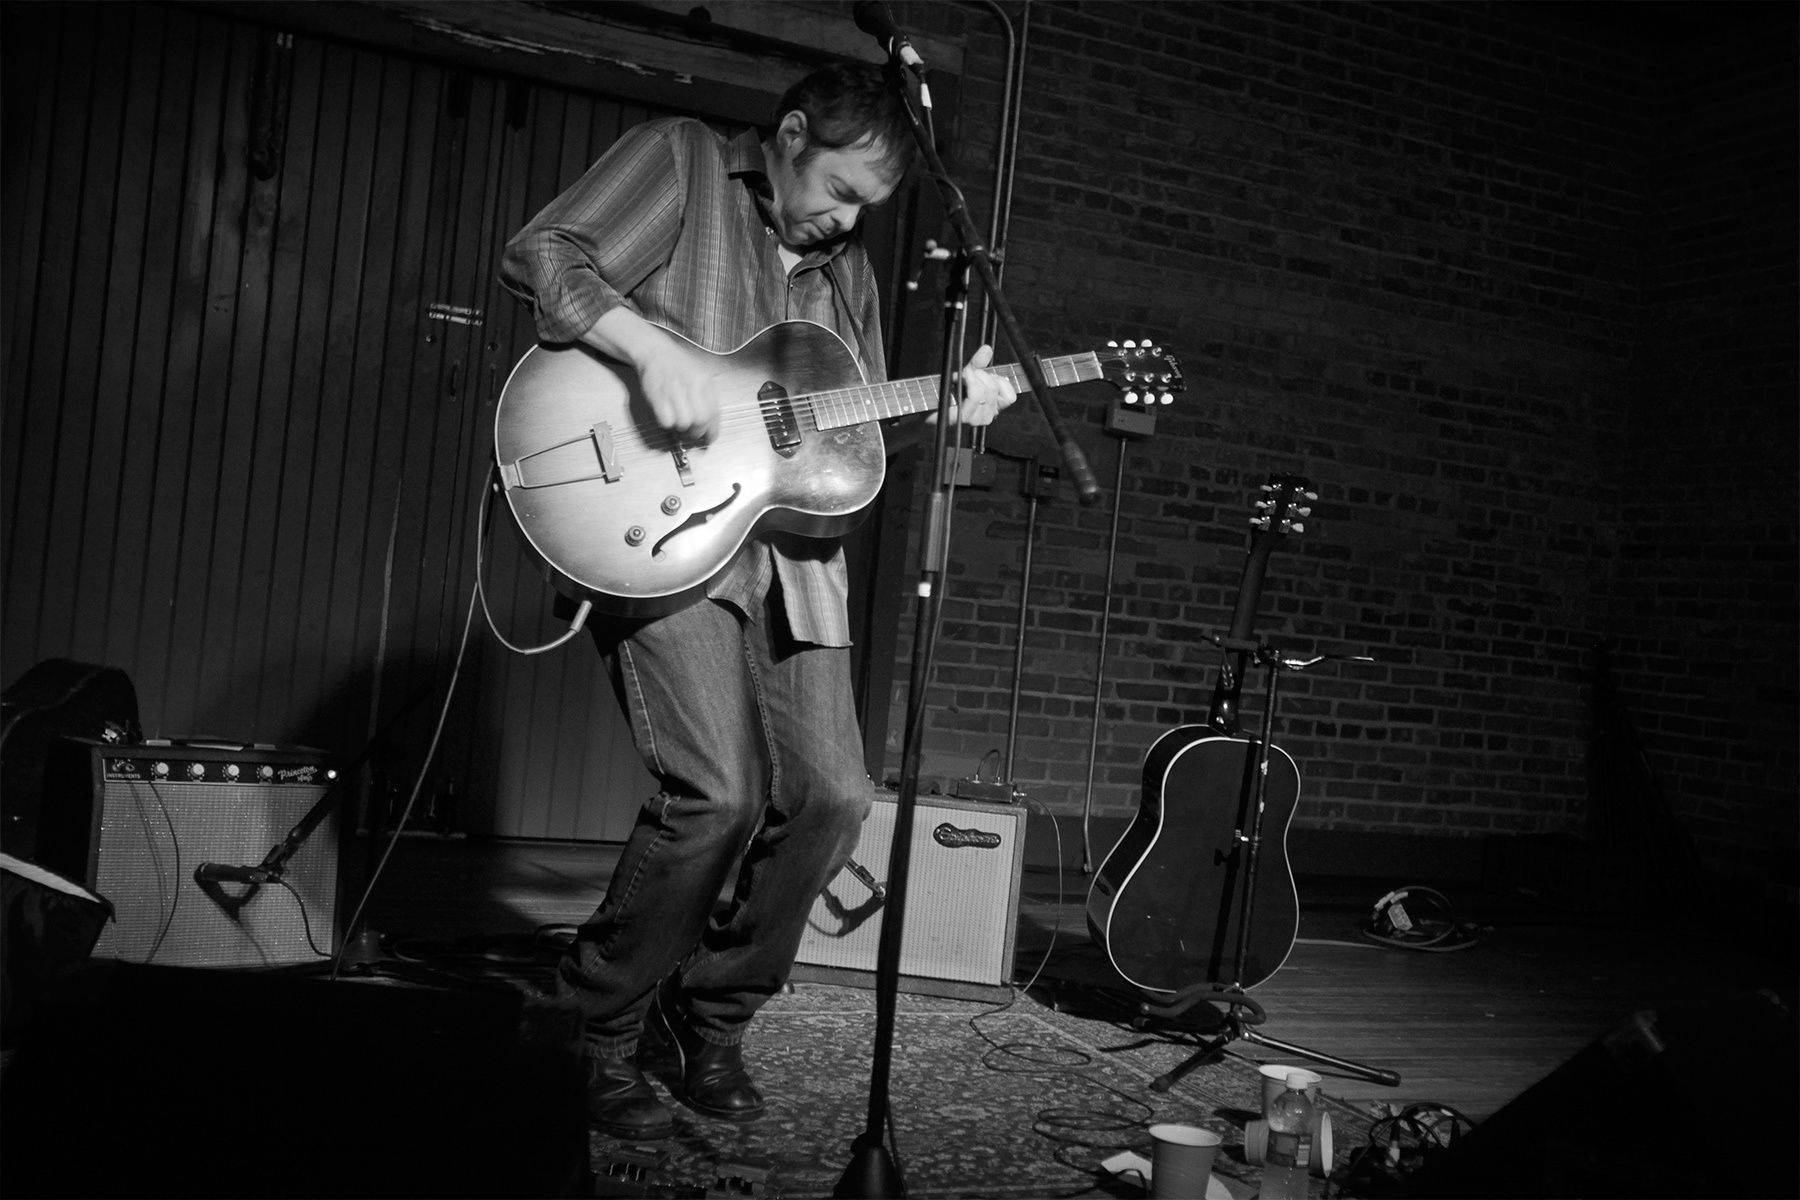 Lousiana songwriter Kevin Gordon performed at SXSE for an intimate show on August of 2010. Gordon says he grew up on a steady diet of Lousiana's indigenous swamp blues, honky tonk and rockabilly.